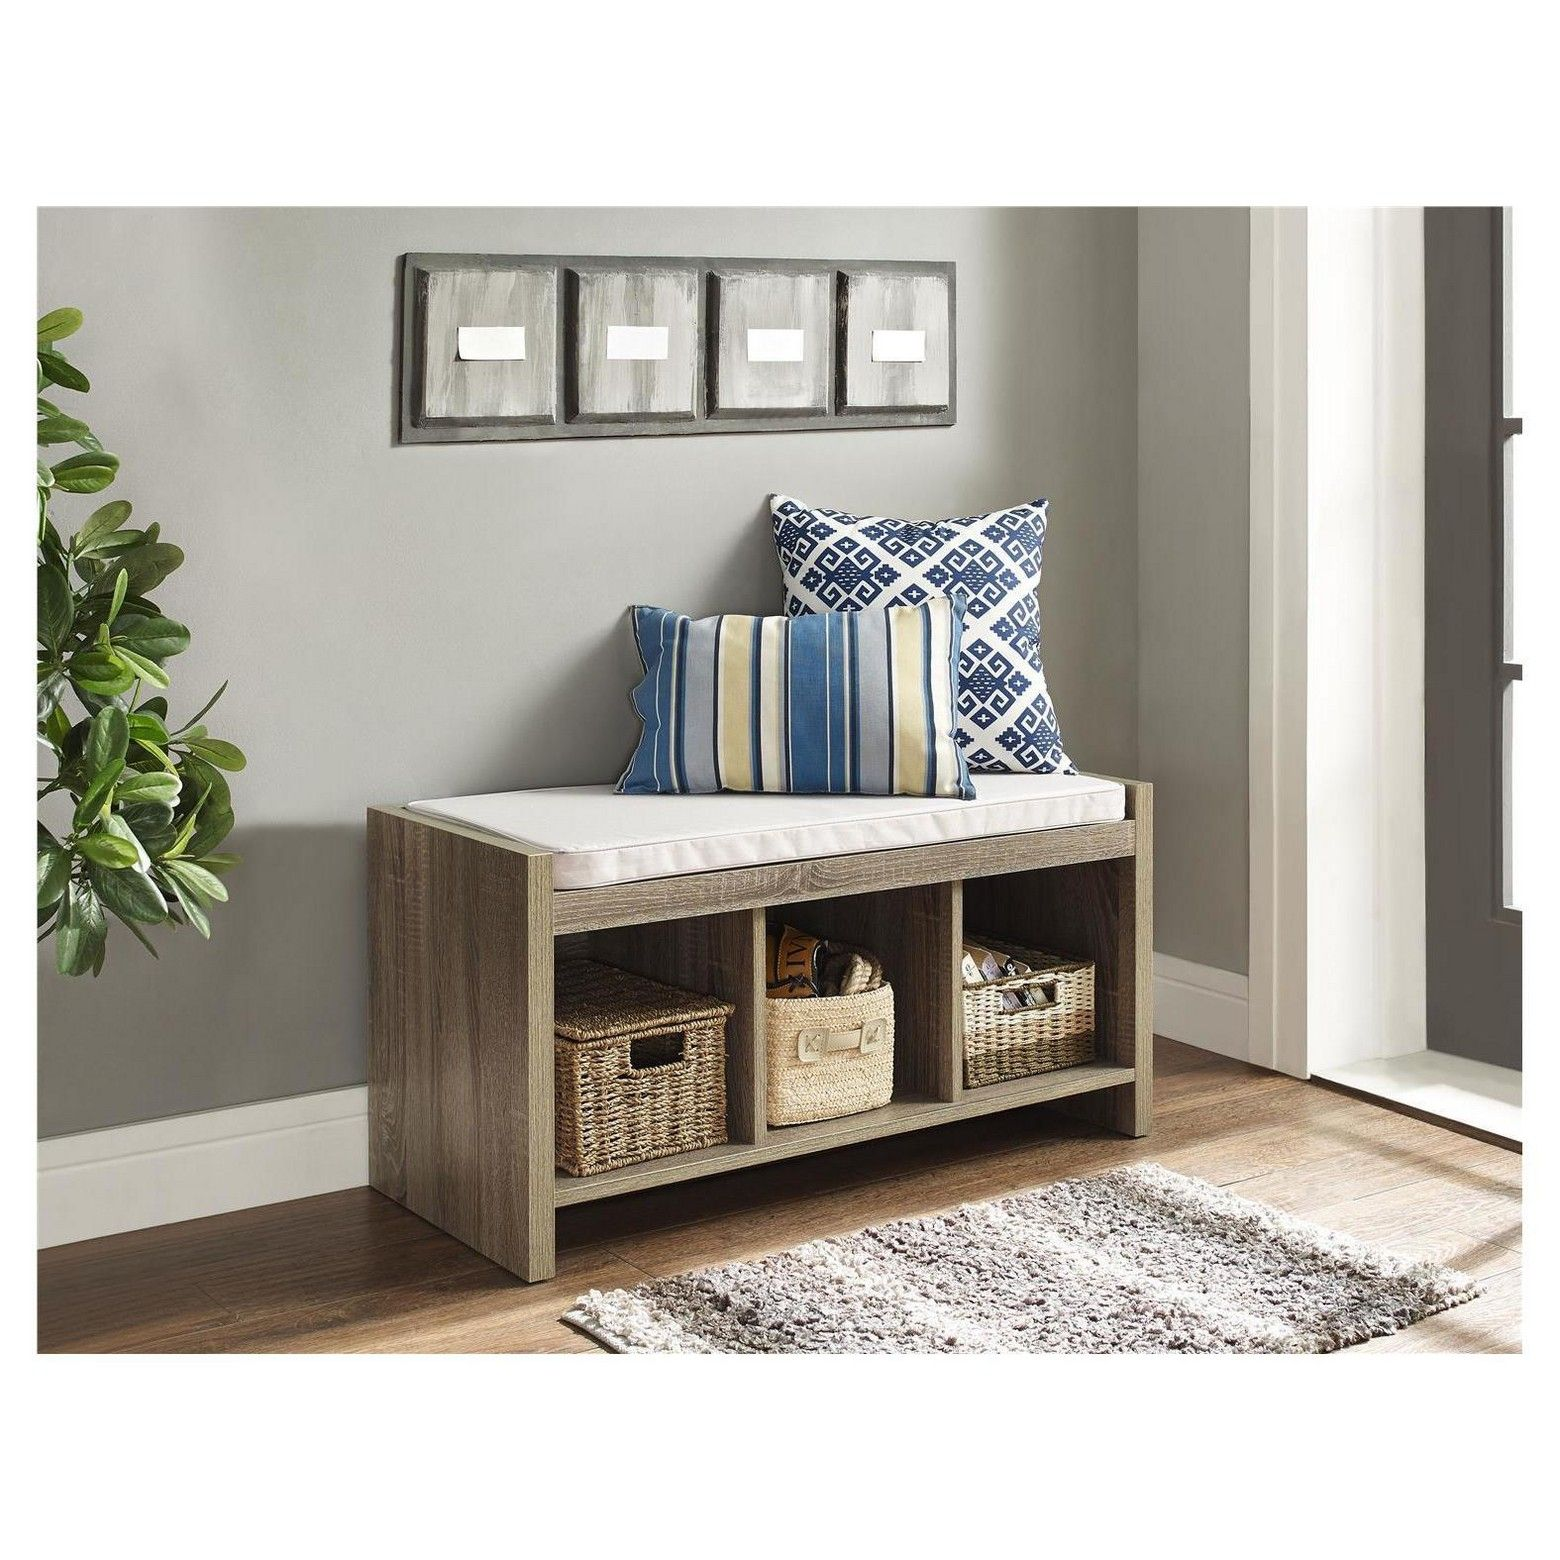 Awesome Hendland Entryway Storage Bench With Cushion Distressed Gray Gmtry Best Dining Table And Chair Ideas Images Gmtryco